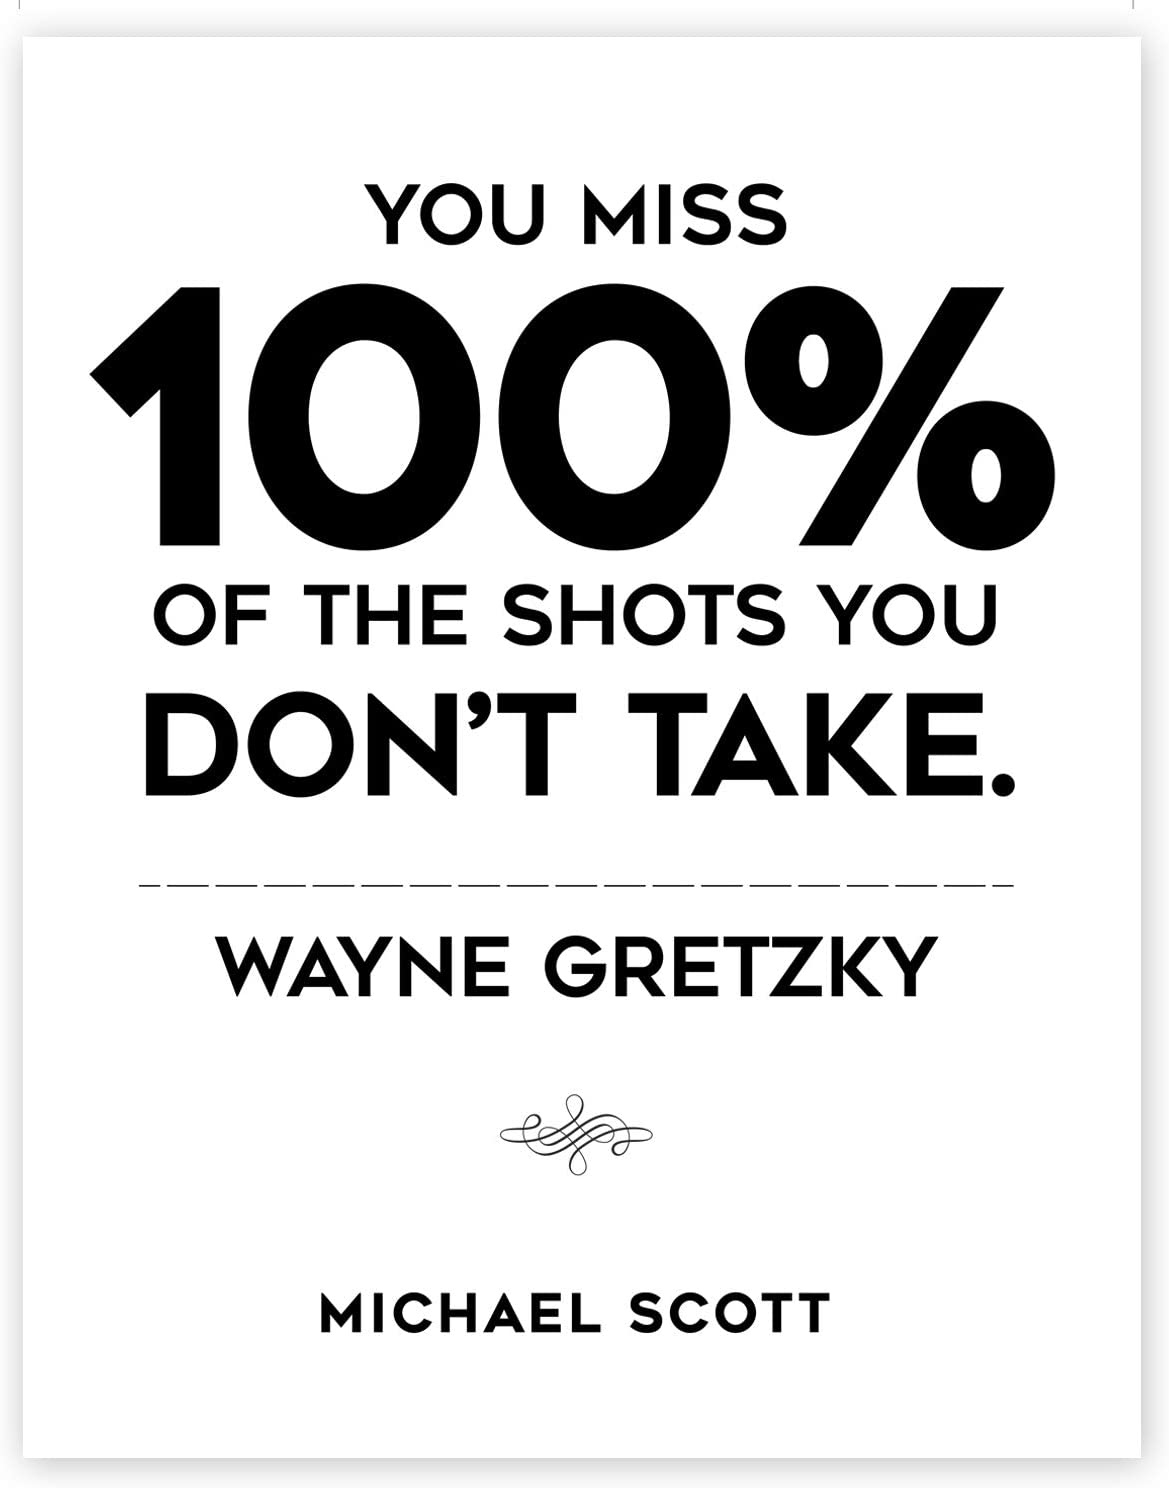 You Miss 100% of The Shots You Don't Take Michael Scott Motivational Quotes Ready to be Framed Home Décor 11